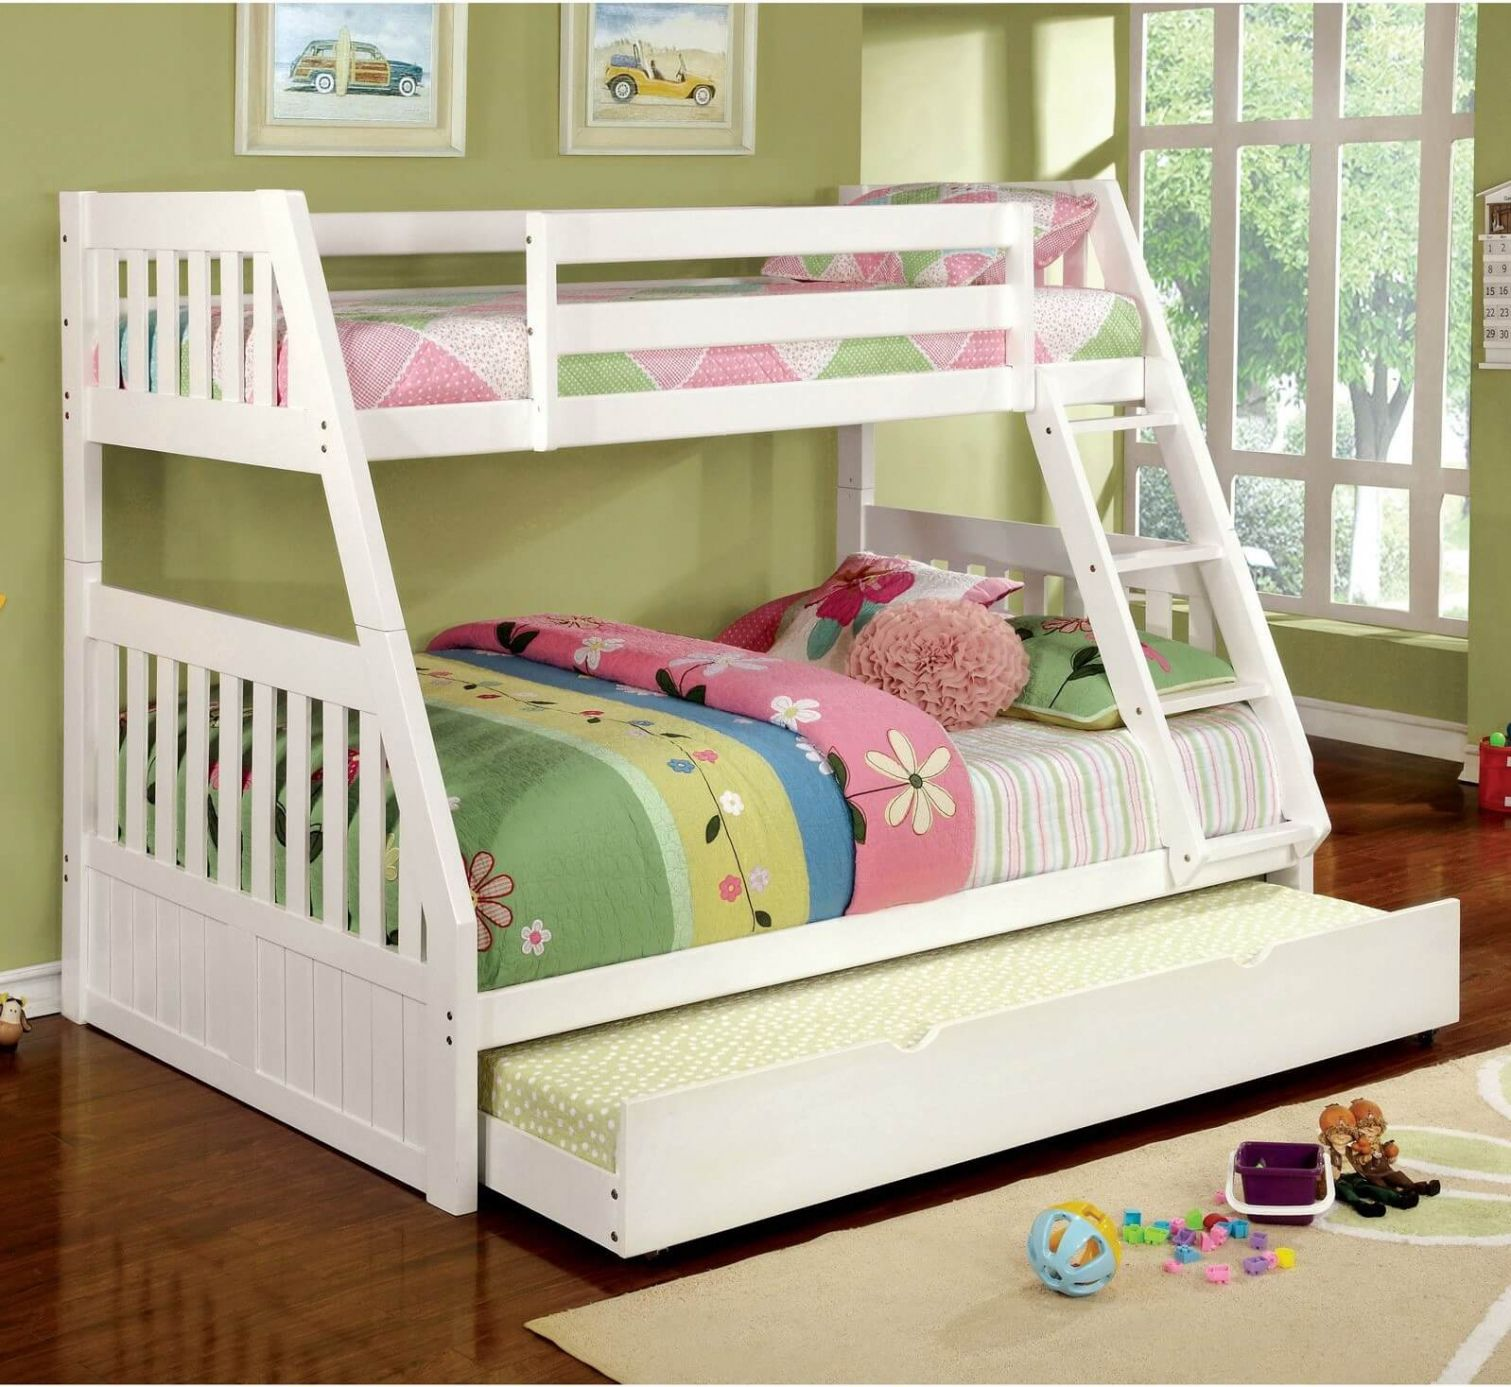 cheap full over full bunk beds for sale interior paint colors 2017